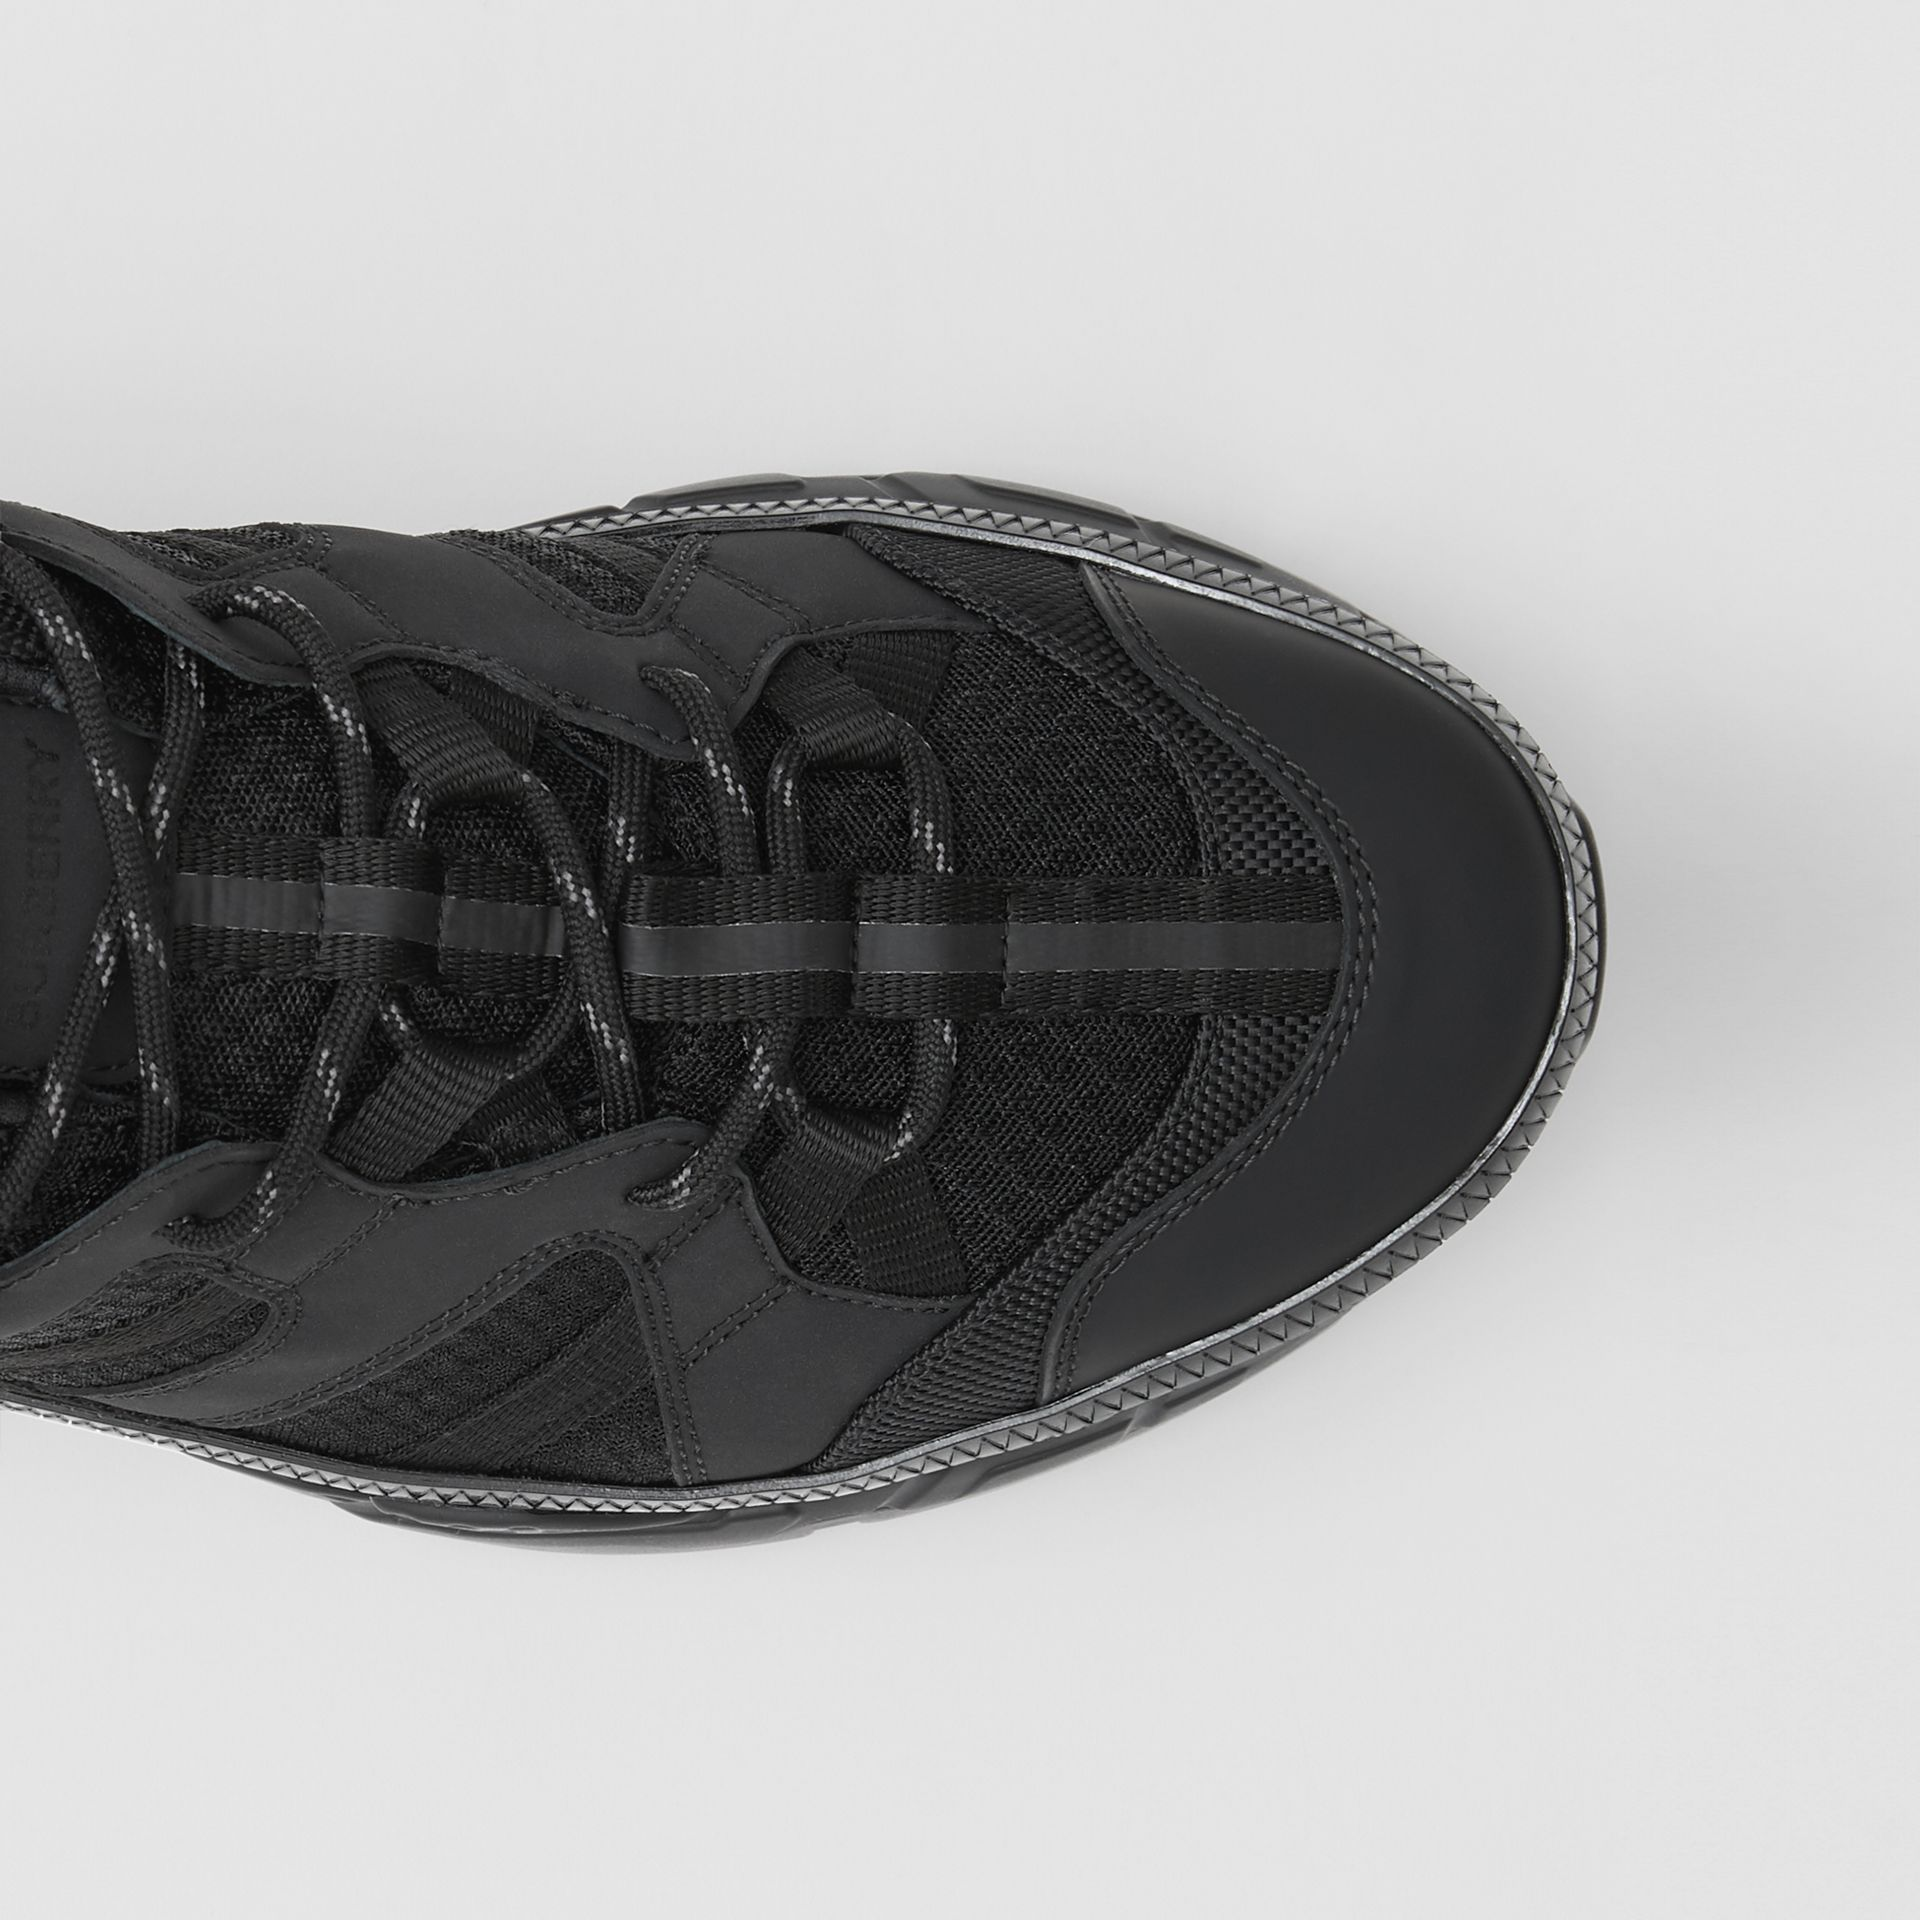 Mesh and Nubuck Union Sneakers in Black - Men | Burberry Canada - gallery image 1